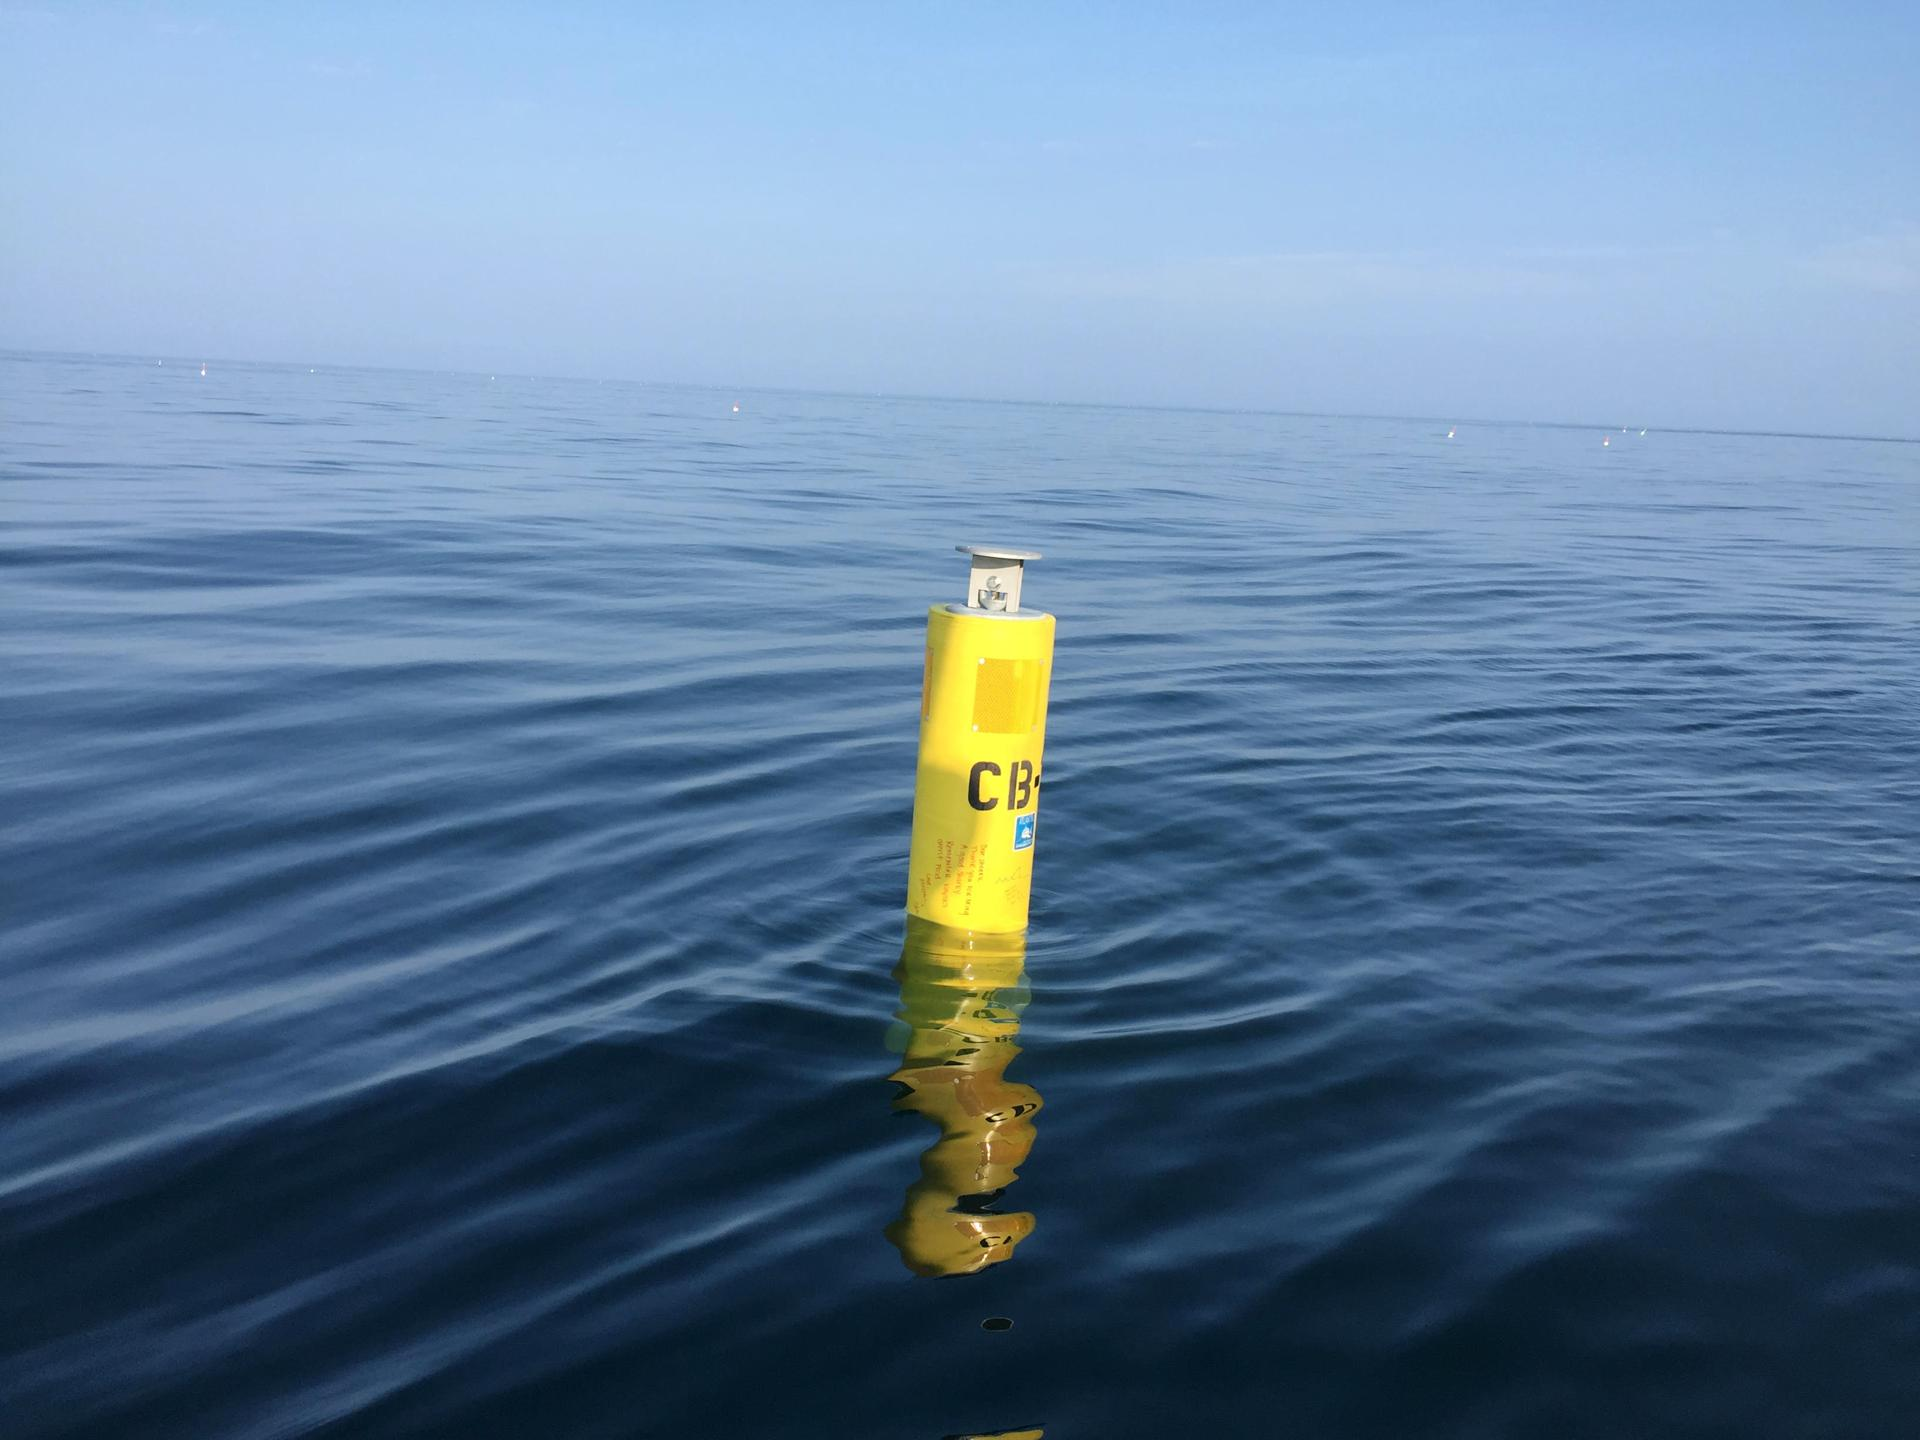 A US shark tracking buoy Photo: Kristin Orr